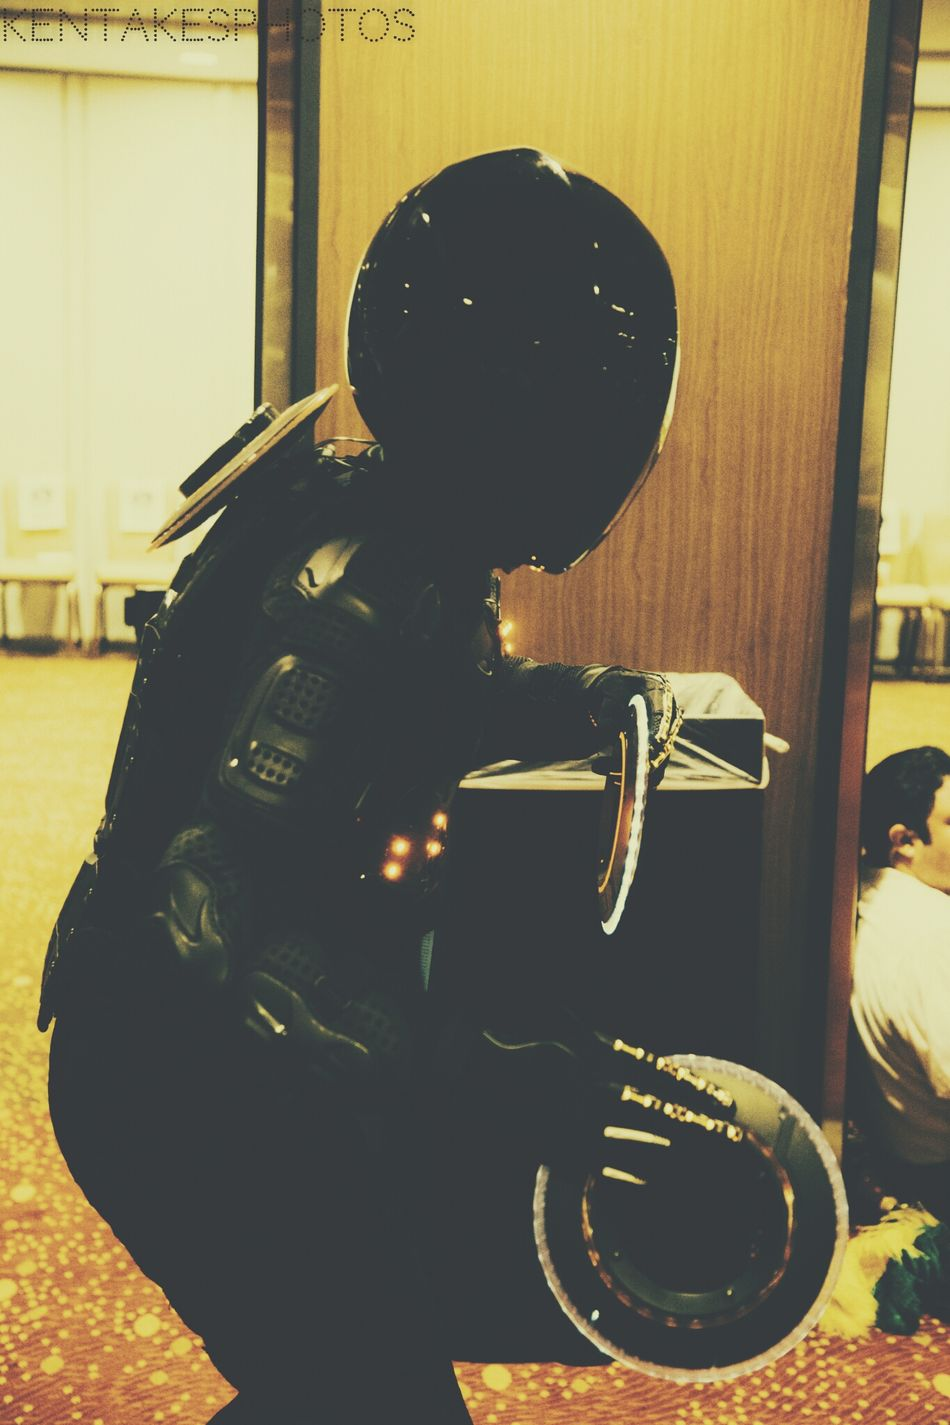 DragonCon Tron Atlanta